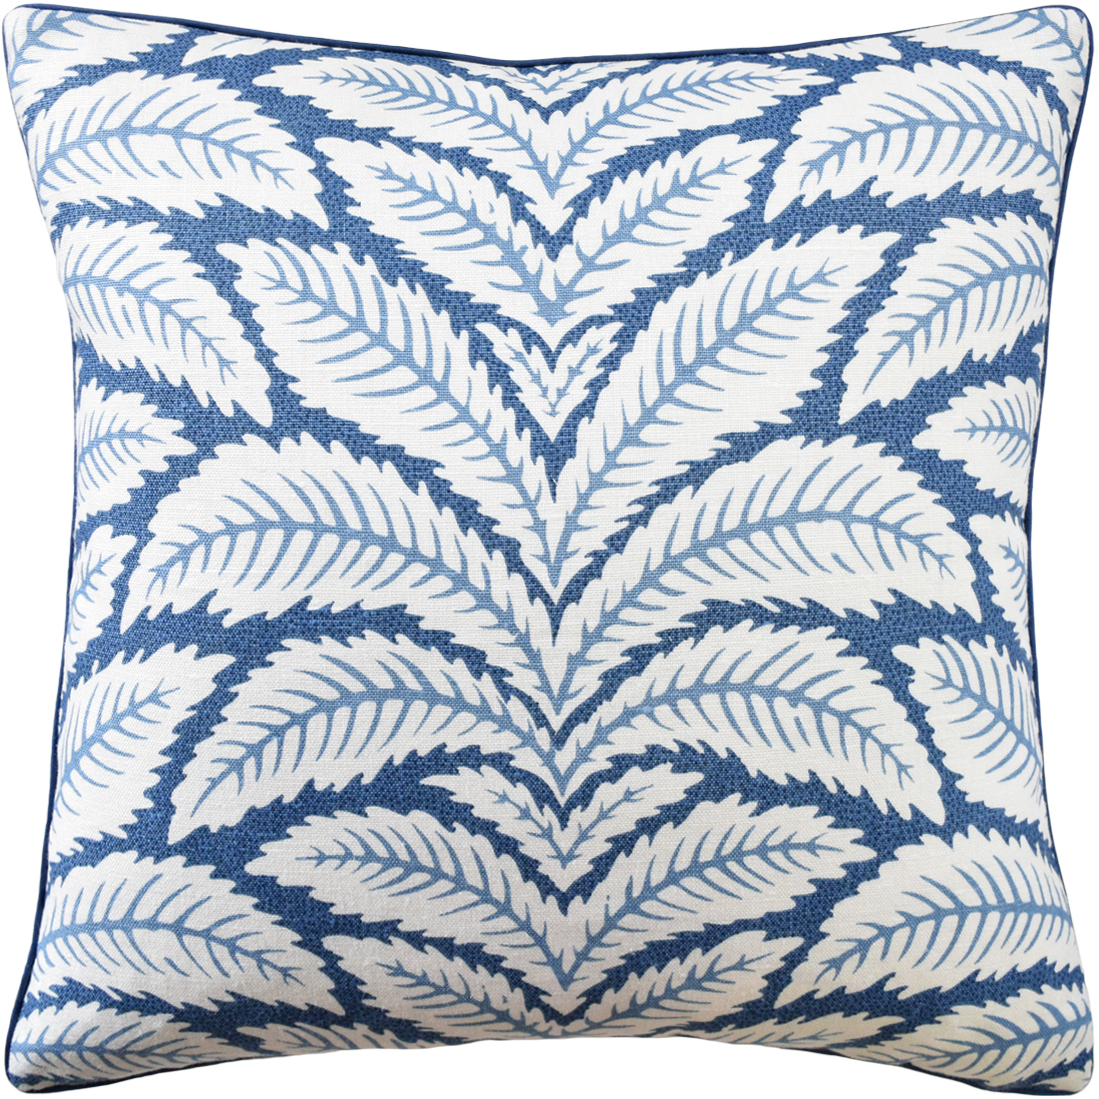 Talavera Indigo Pillow